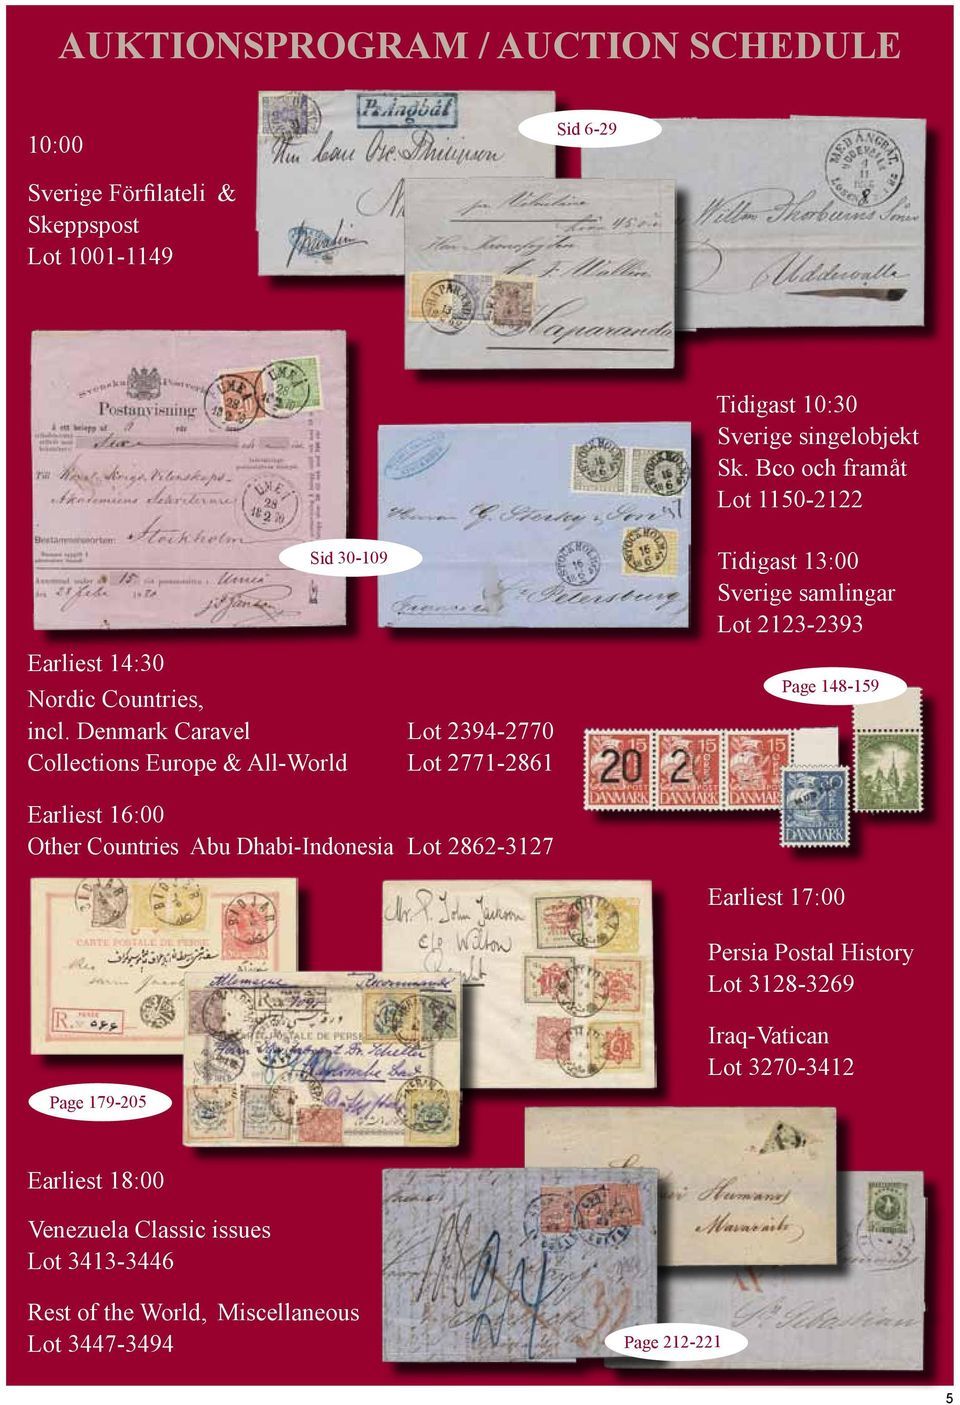 Denmark Caravel Lot 2394-2770 Collections Europe & All-World Lot 2771-2861 Tidigast 13:00 Sverige samlingar Lot 2123-2393 Page 148-159 Earliest 16:00 Other